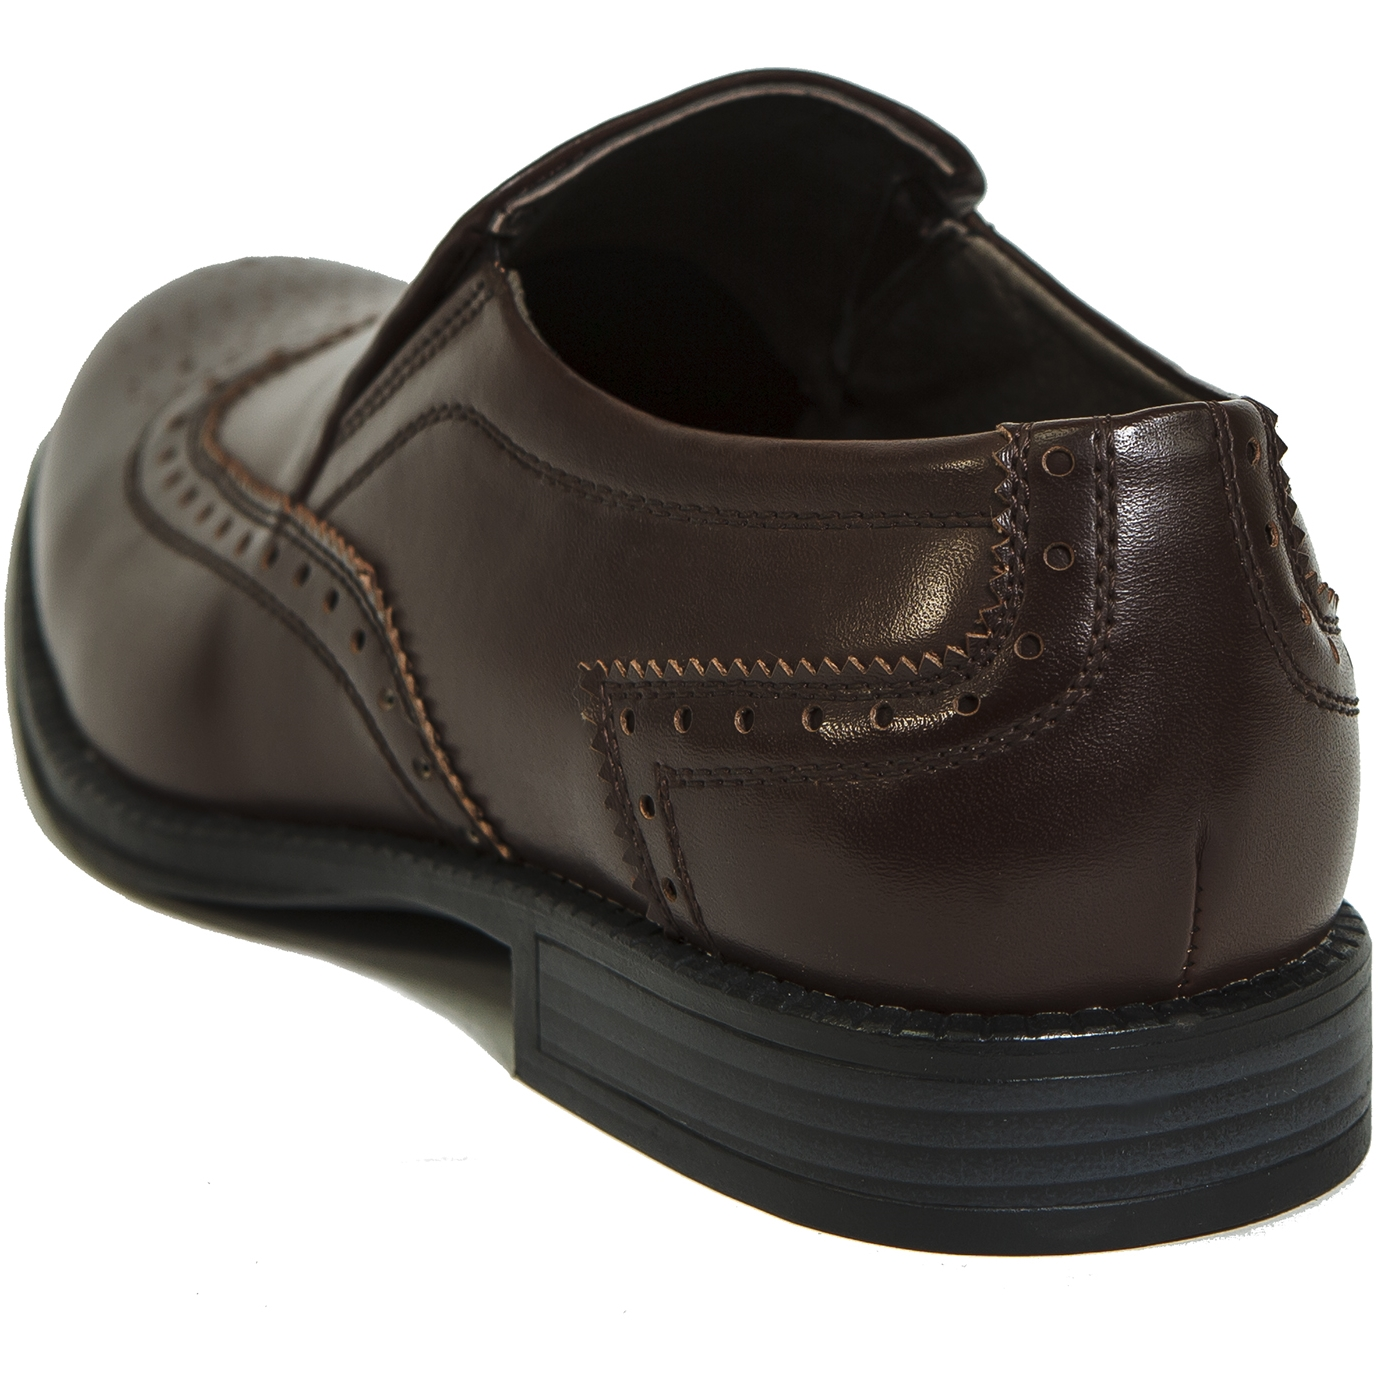 Alpine-Swiss-Basel-Mens-Wing-Tip-Dress-Shoes-Brogue-Medallion-Slip-On-Loafers thumbnail 20